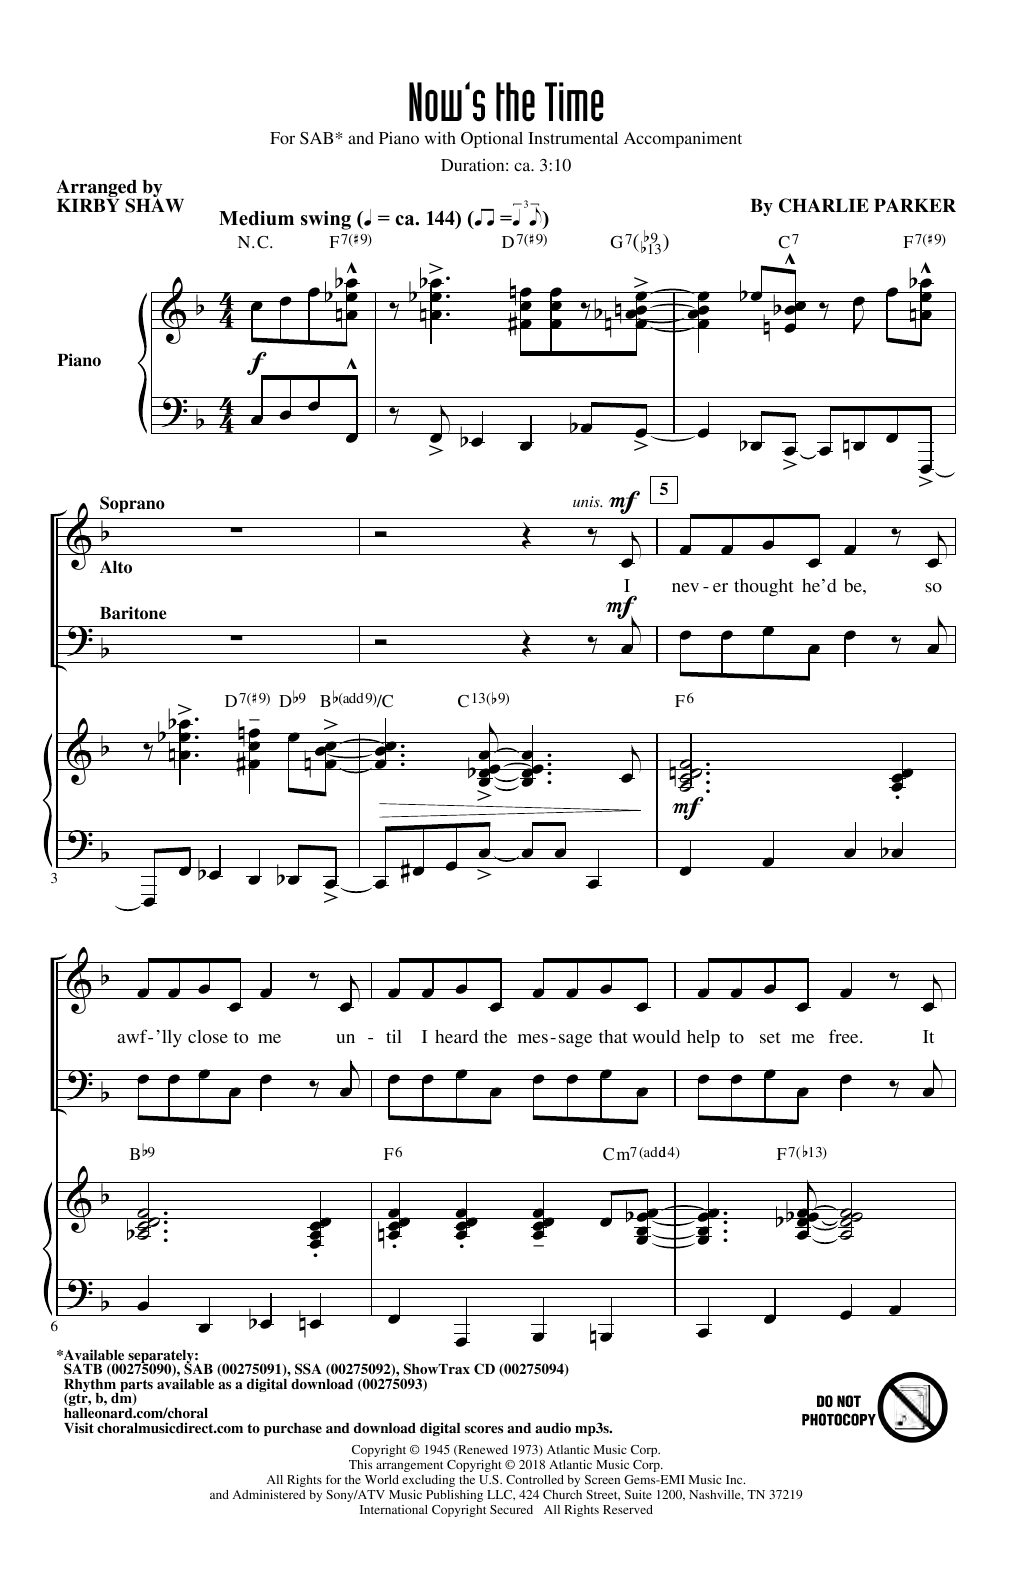 Charlie Parker Now's The Time (arr. Kirby Shaw) sheet music notes and chords. Download Printable PDF.